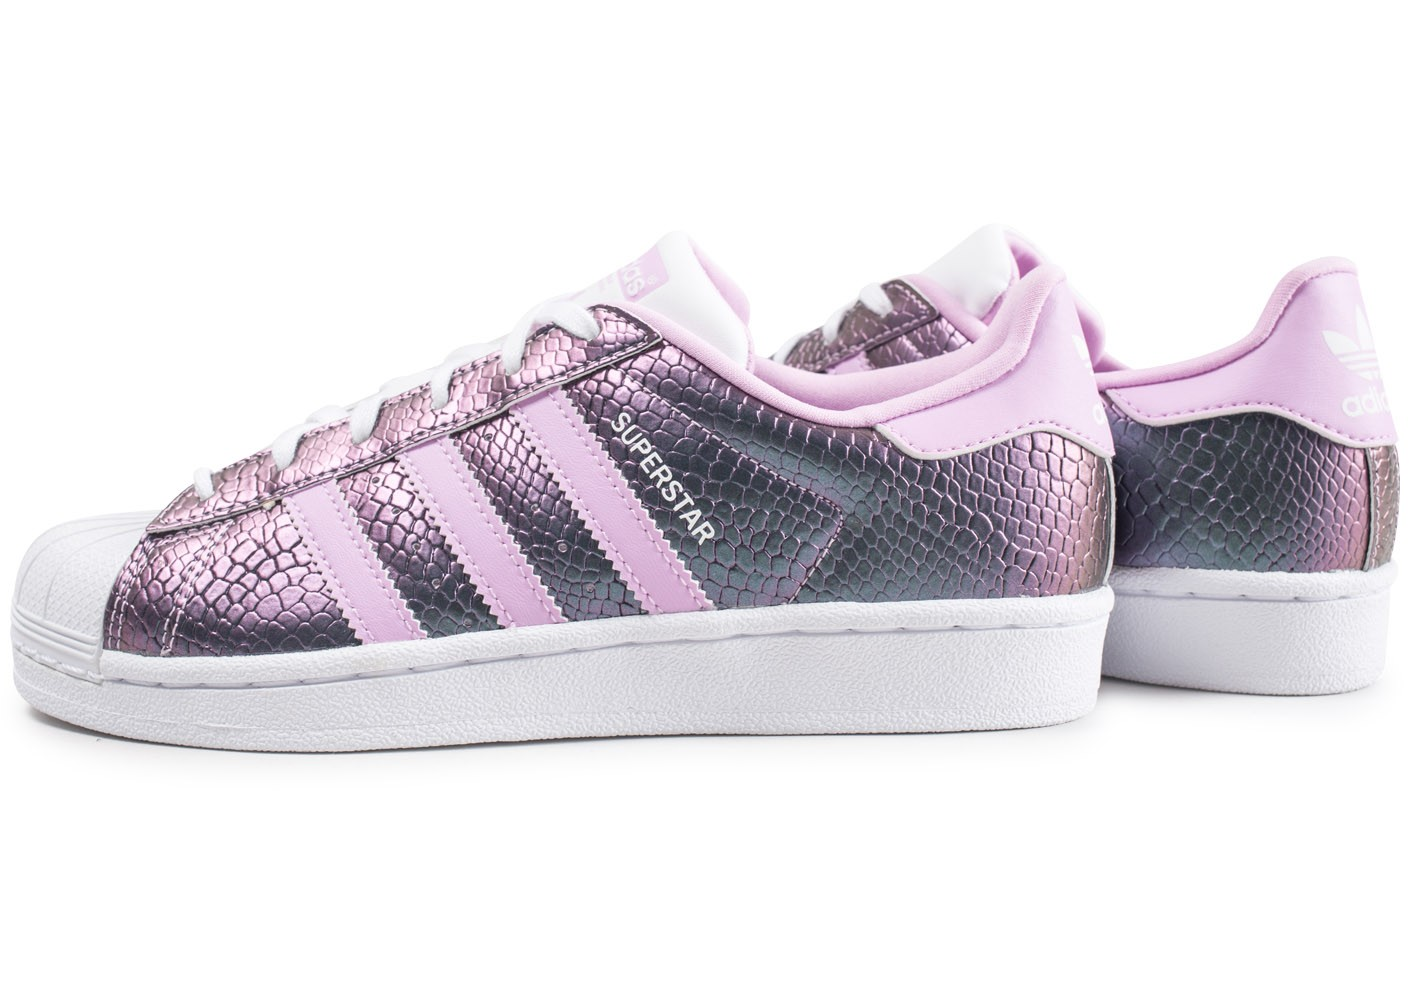 adidas Superstar Serpent Chaussures adidas Chausport